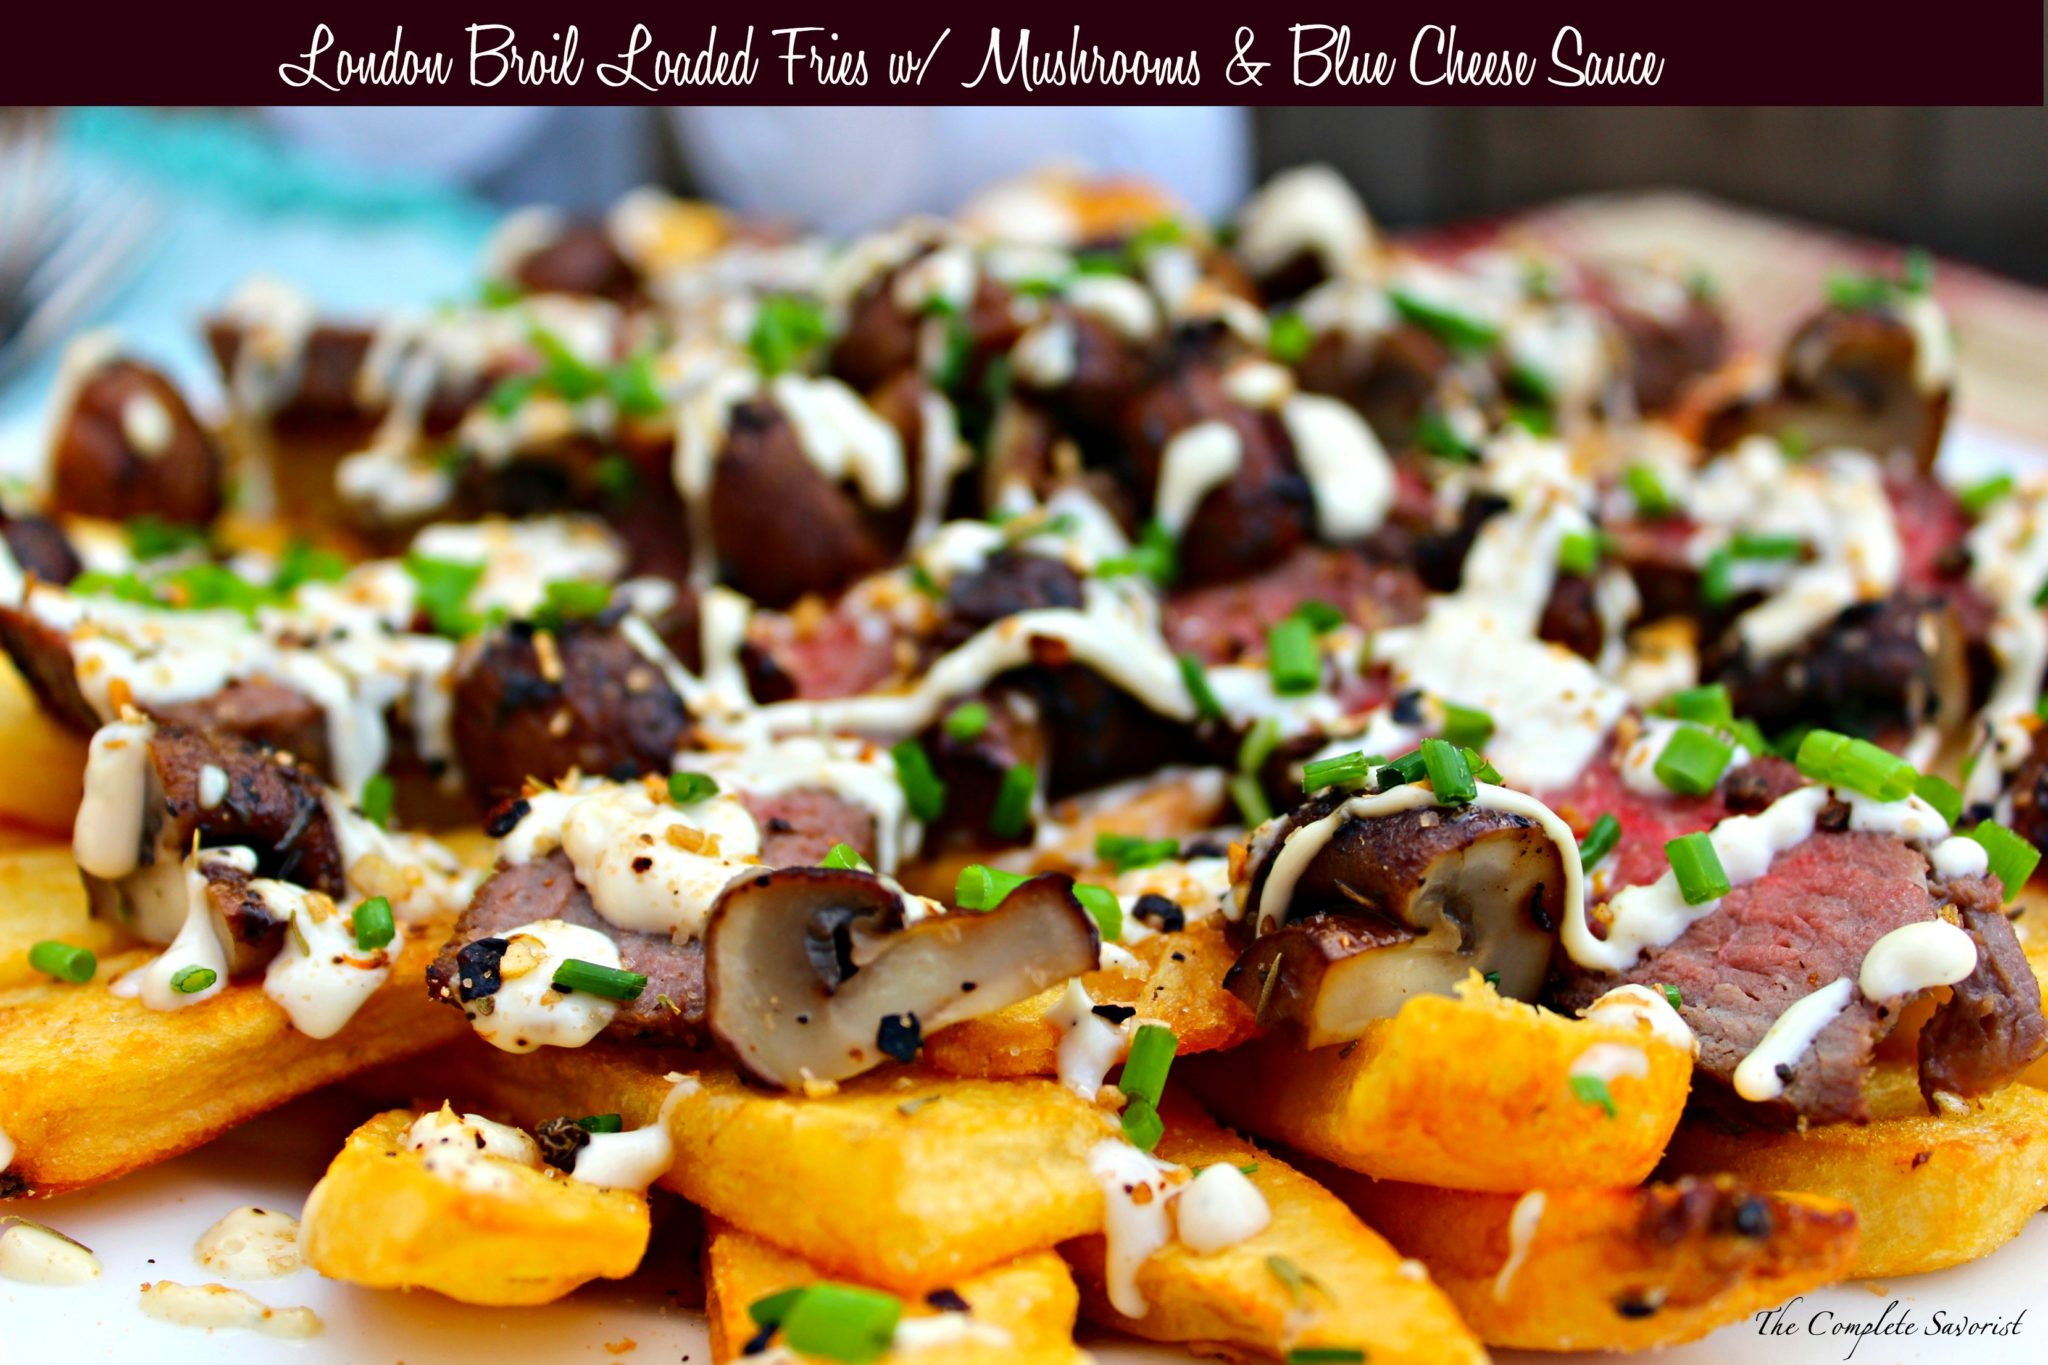 London Broil Loaded Fries w/ Mushrooms and Blue Cheese Sauce ~ Marinated and Grilled London Broil with Sautéed Mushrooms and Creamy Blue Cheese Sauce over Steak Fries ~ The Complete Savorist